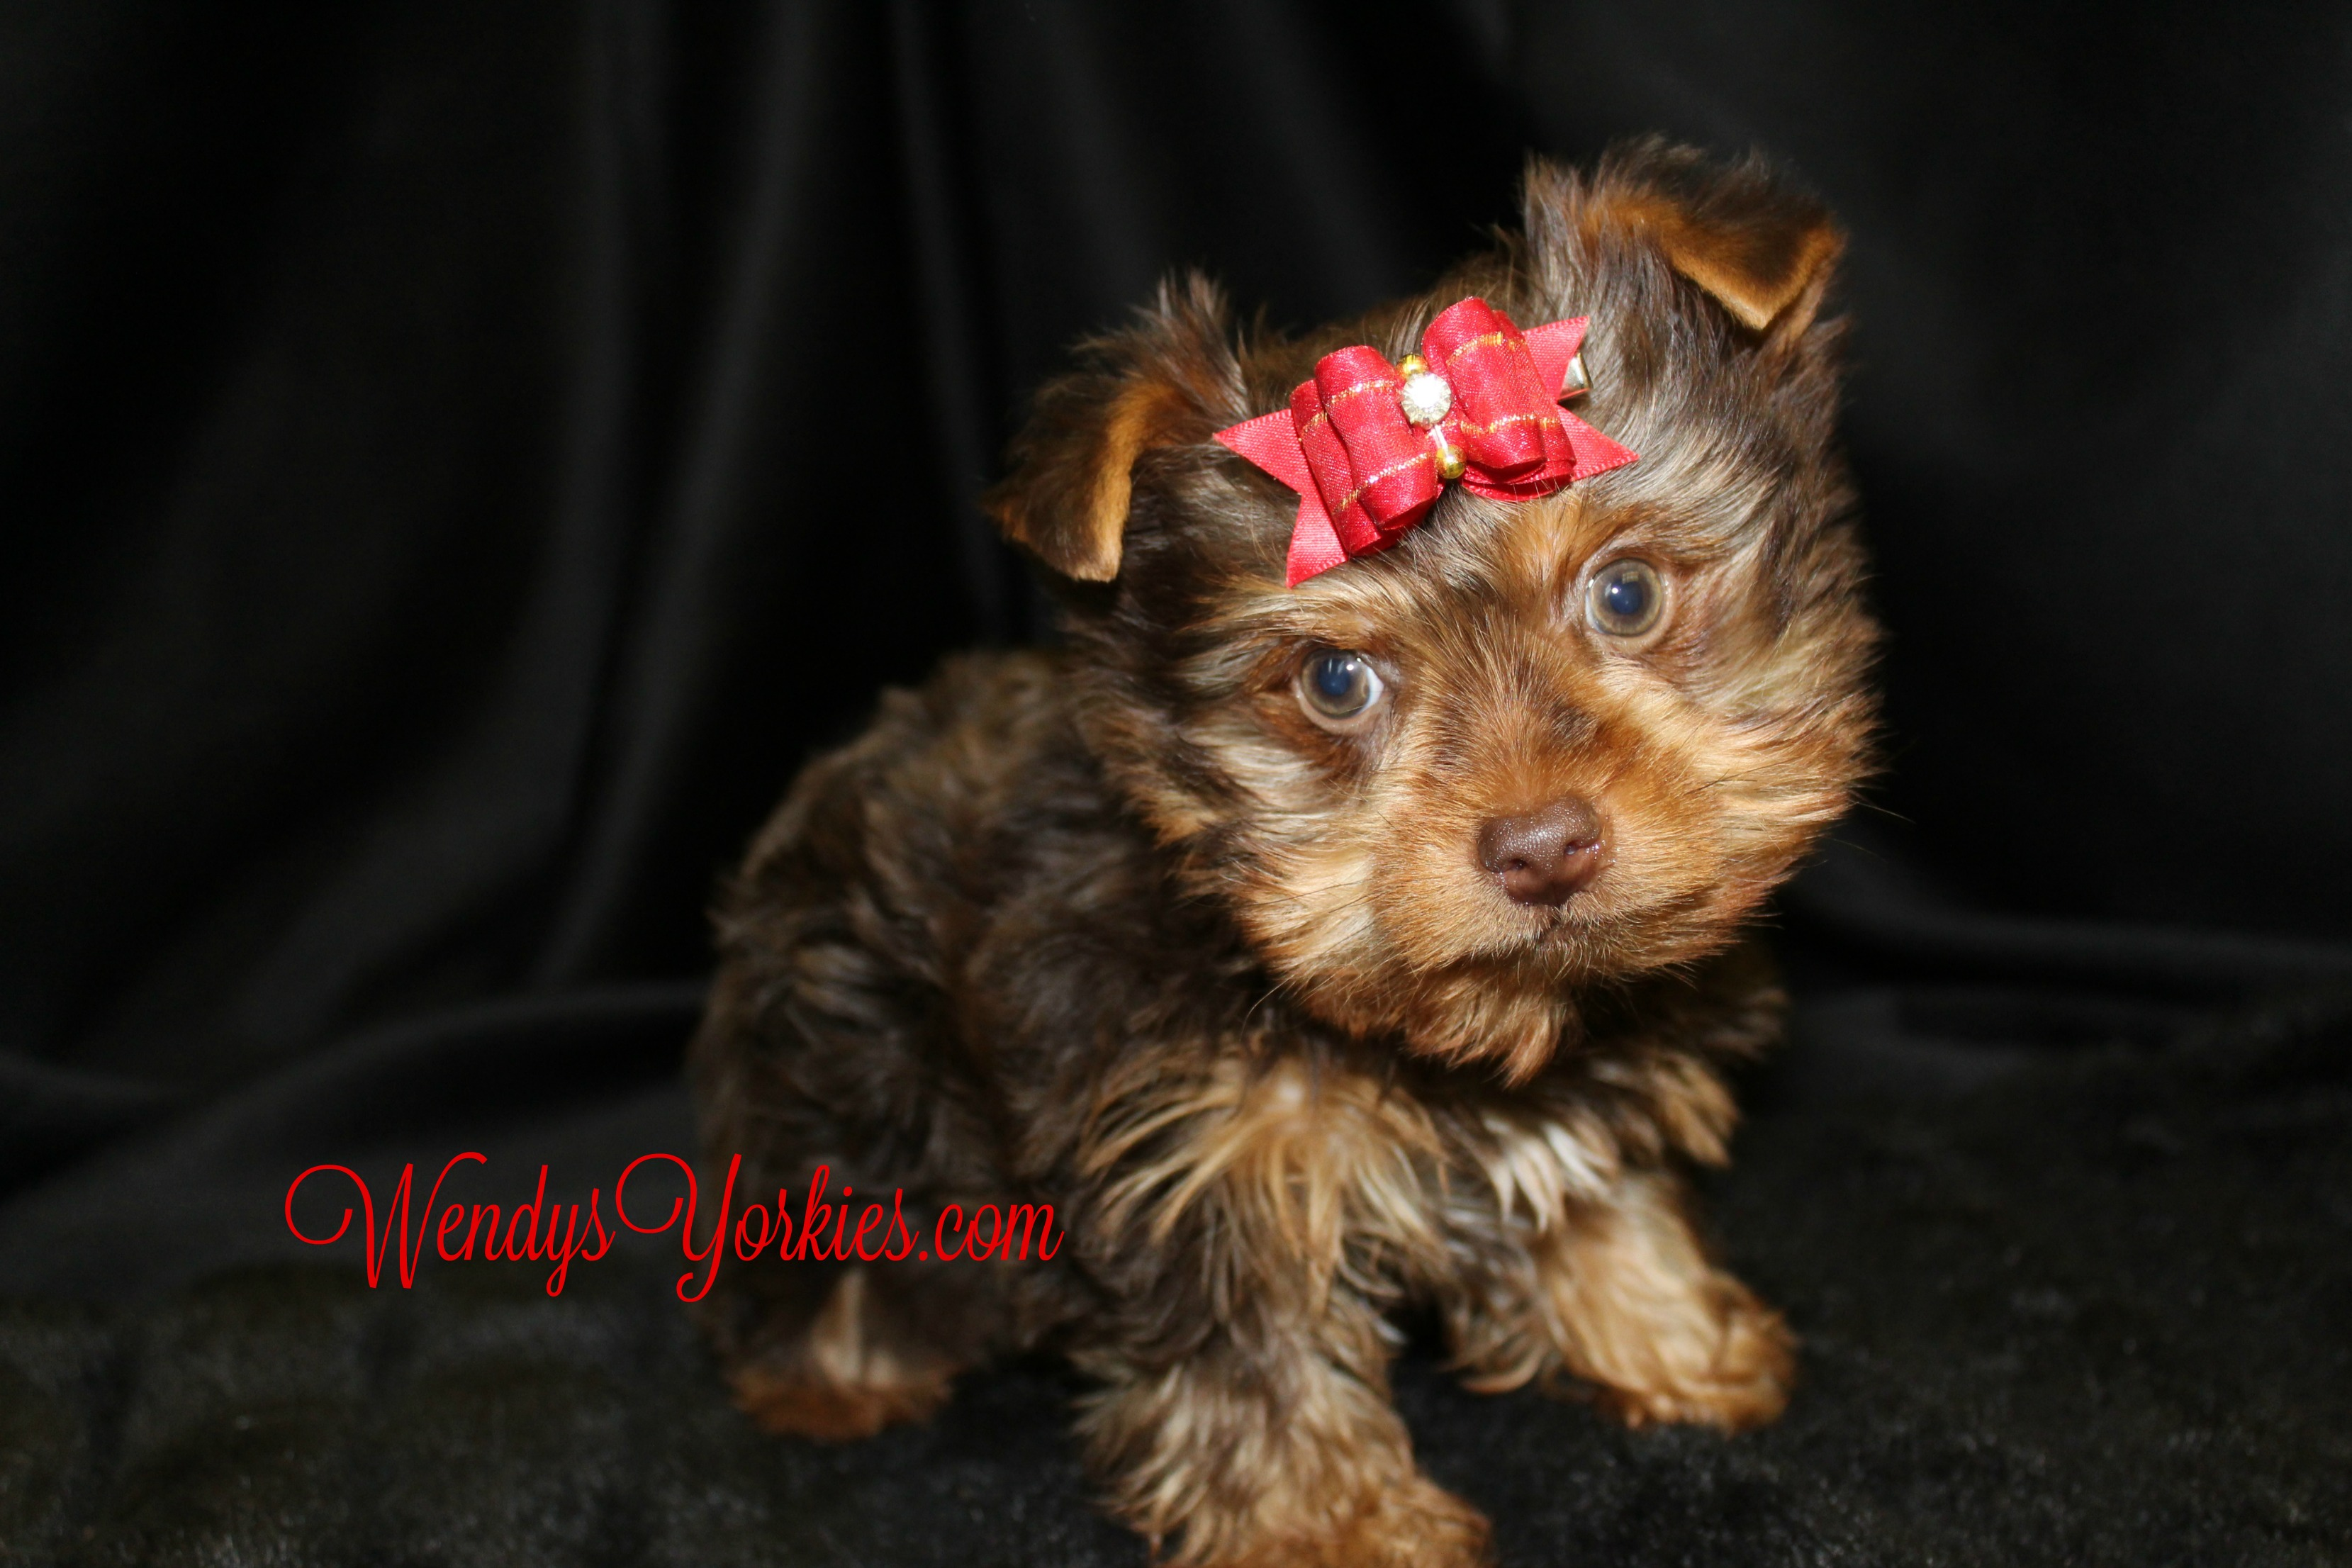 Chocolate Yorkie puppy for sale, WendysYorkies.com, Lela Cm1